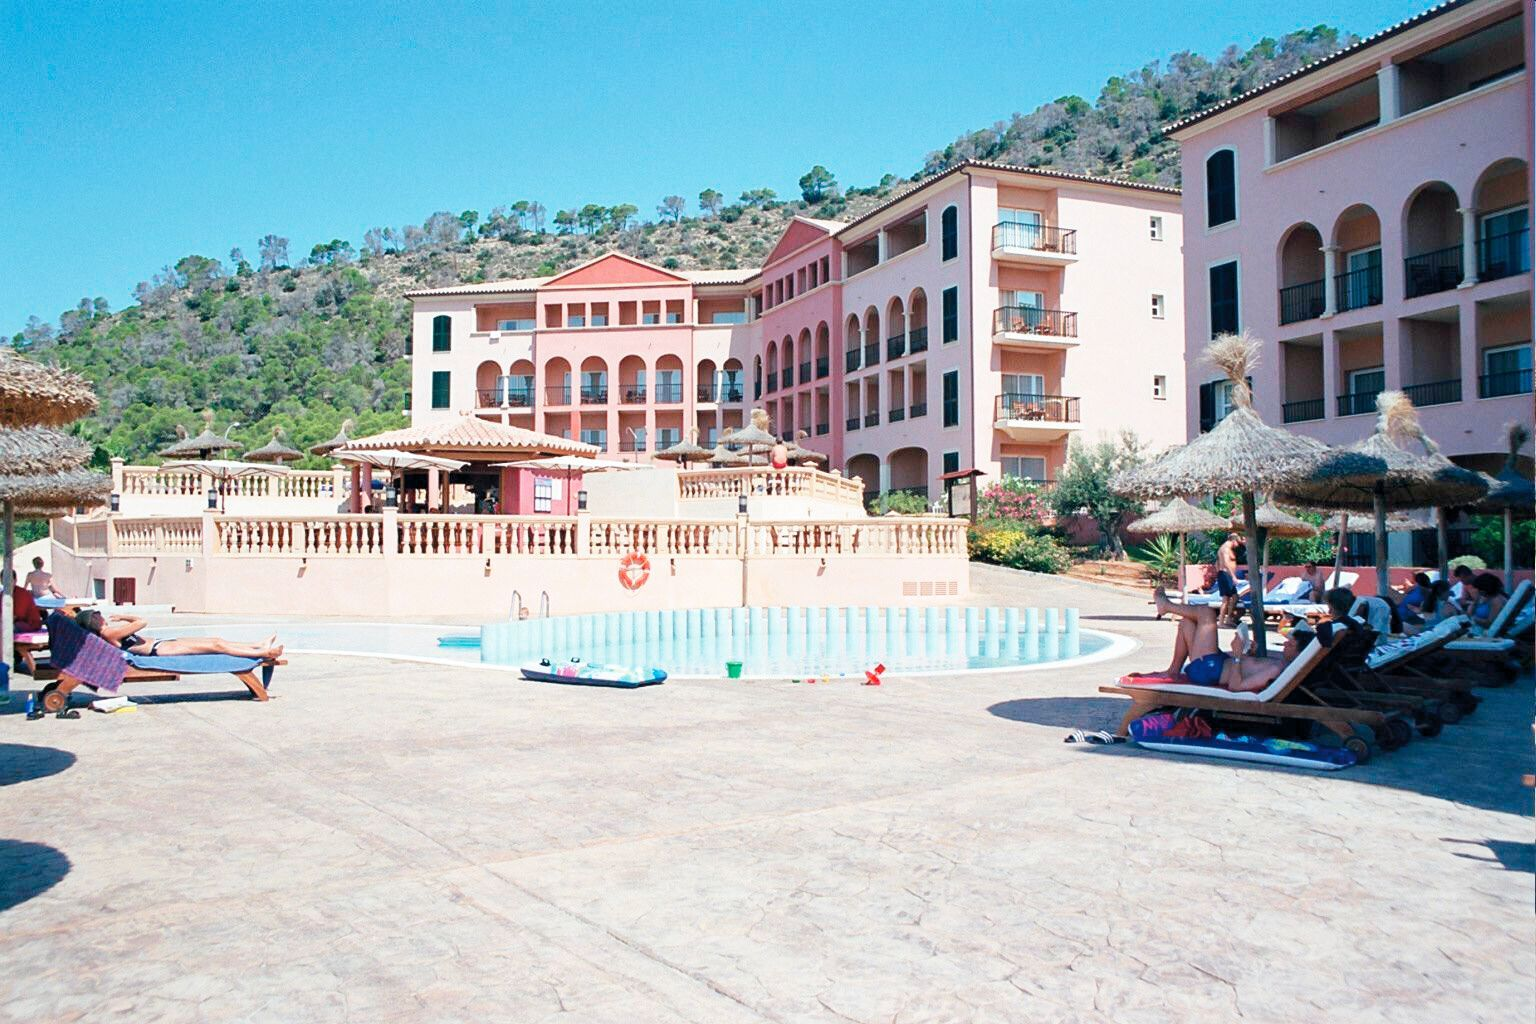 Hôtel Don Antonio 4* pas cher photo 2